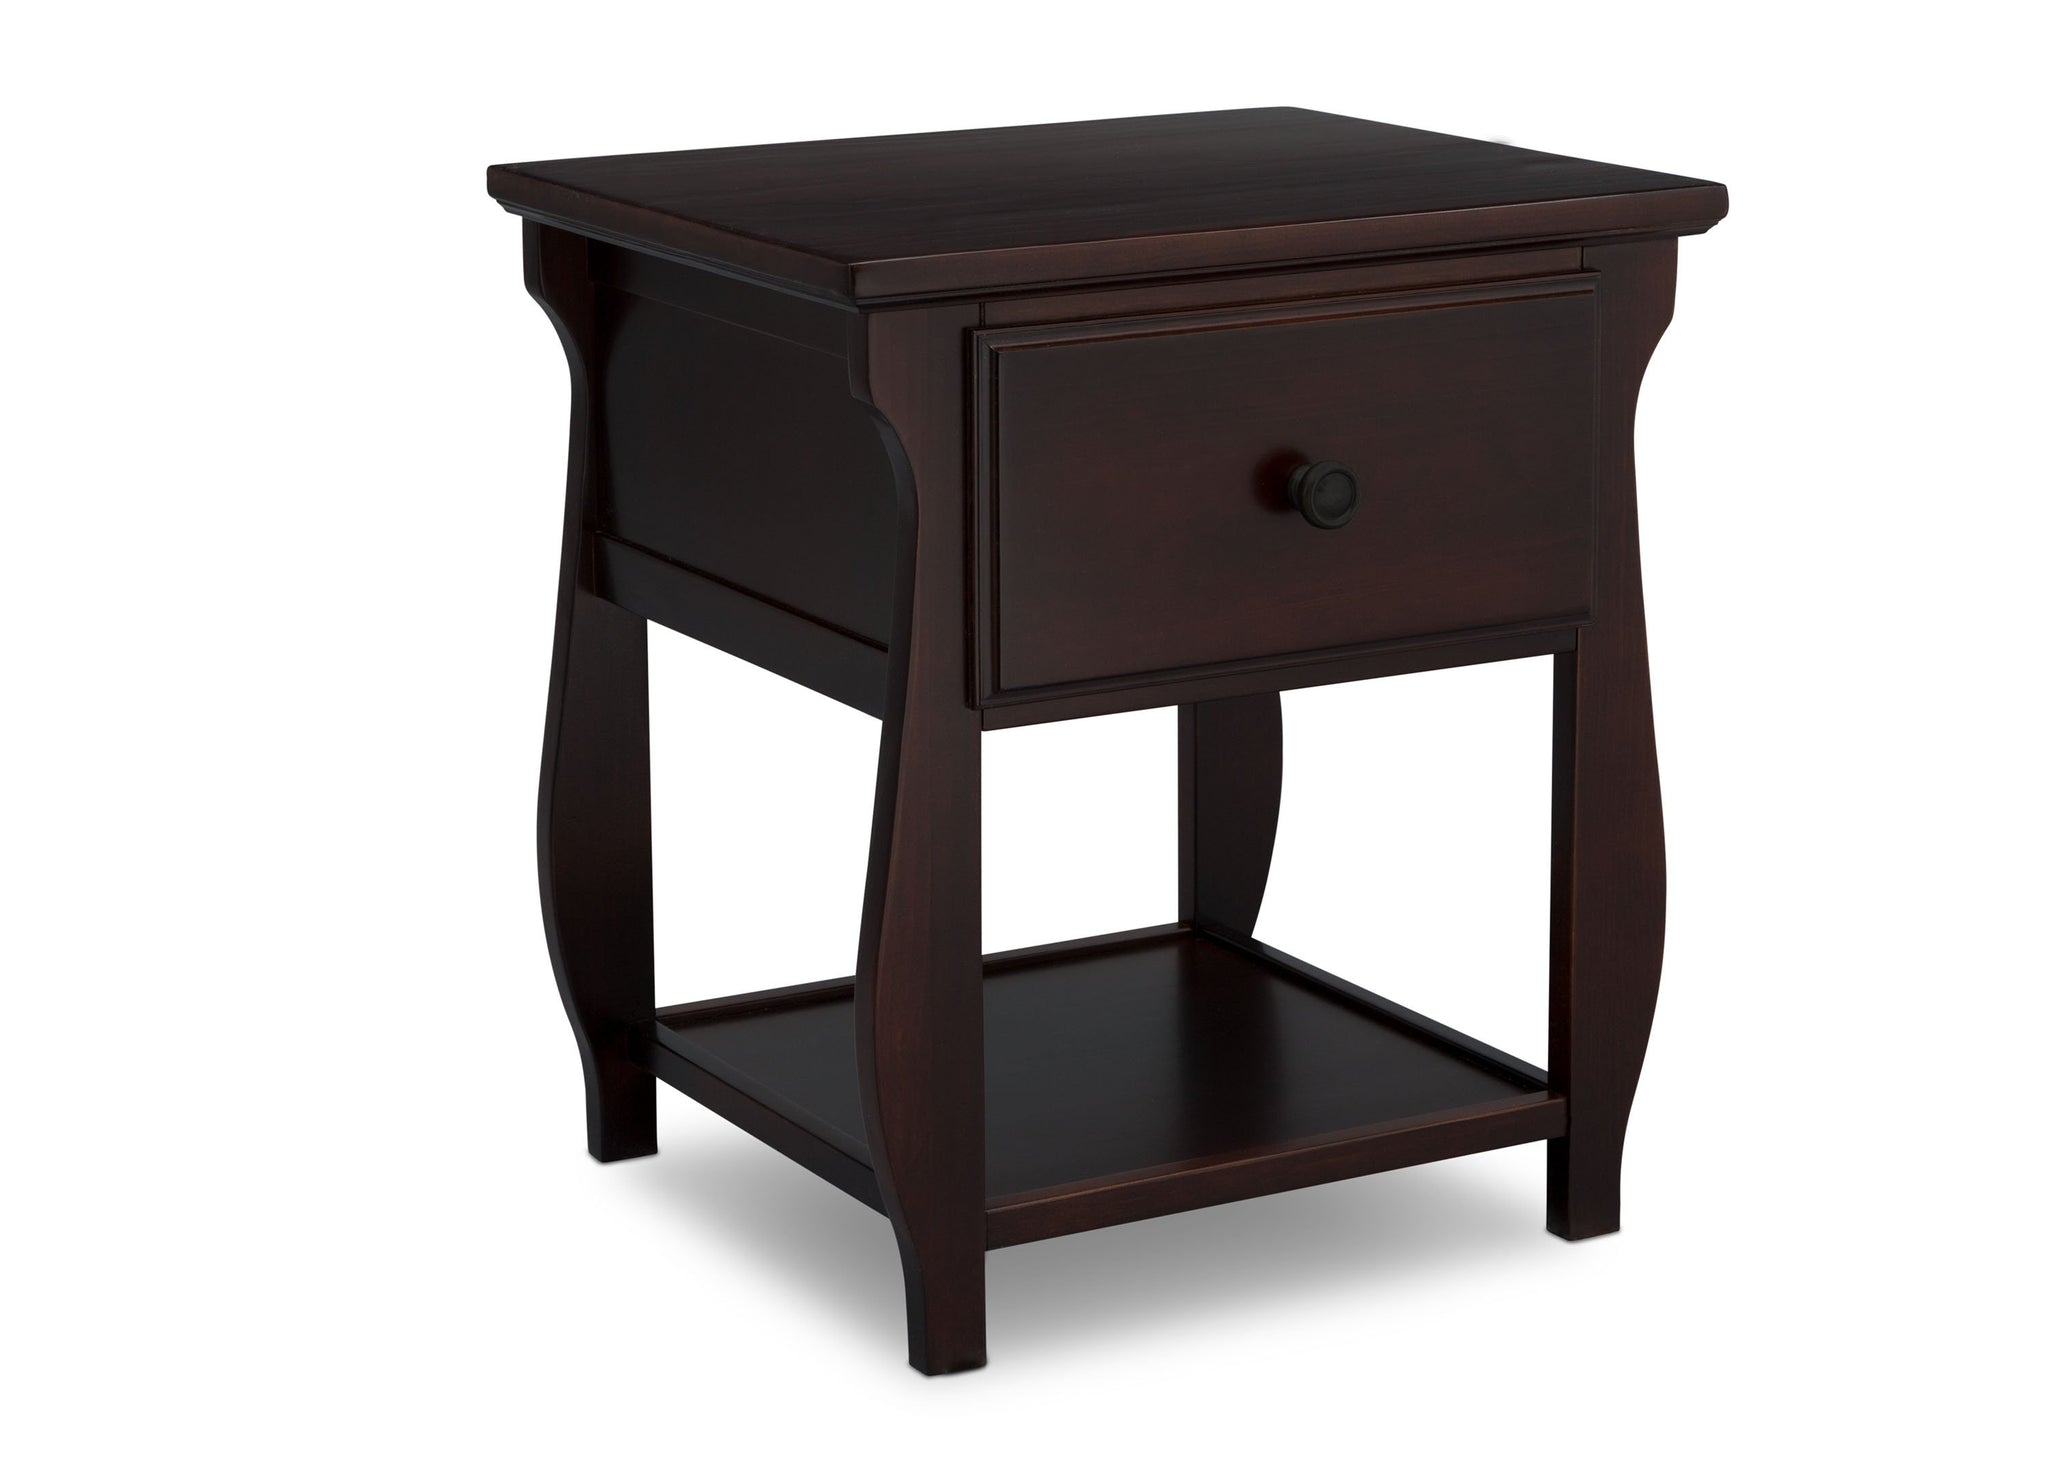 Delta Children Dark Chocolate (207) Lancaster Nightstand (552020), Side View, c3c